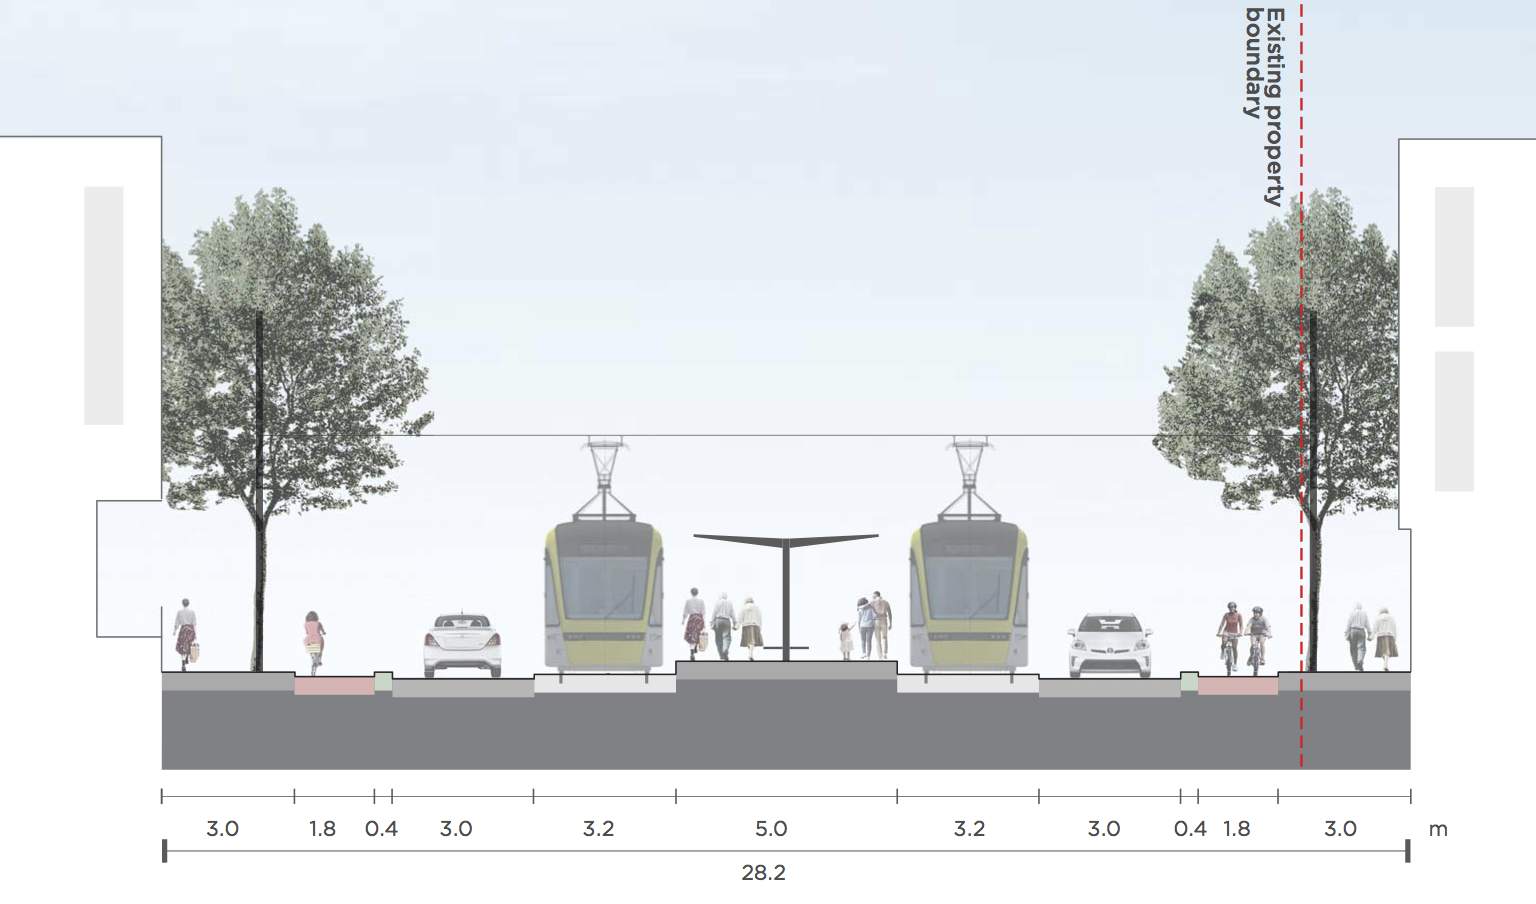 Indicative street cross-section on Adelaide Road